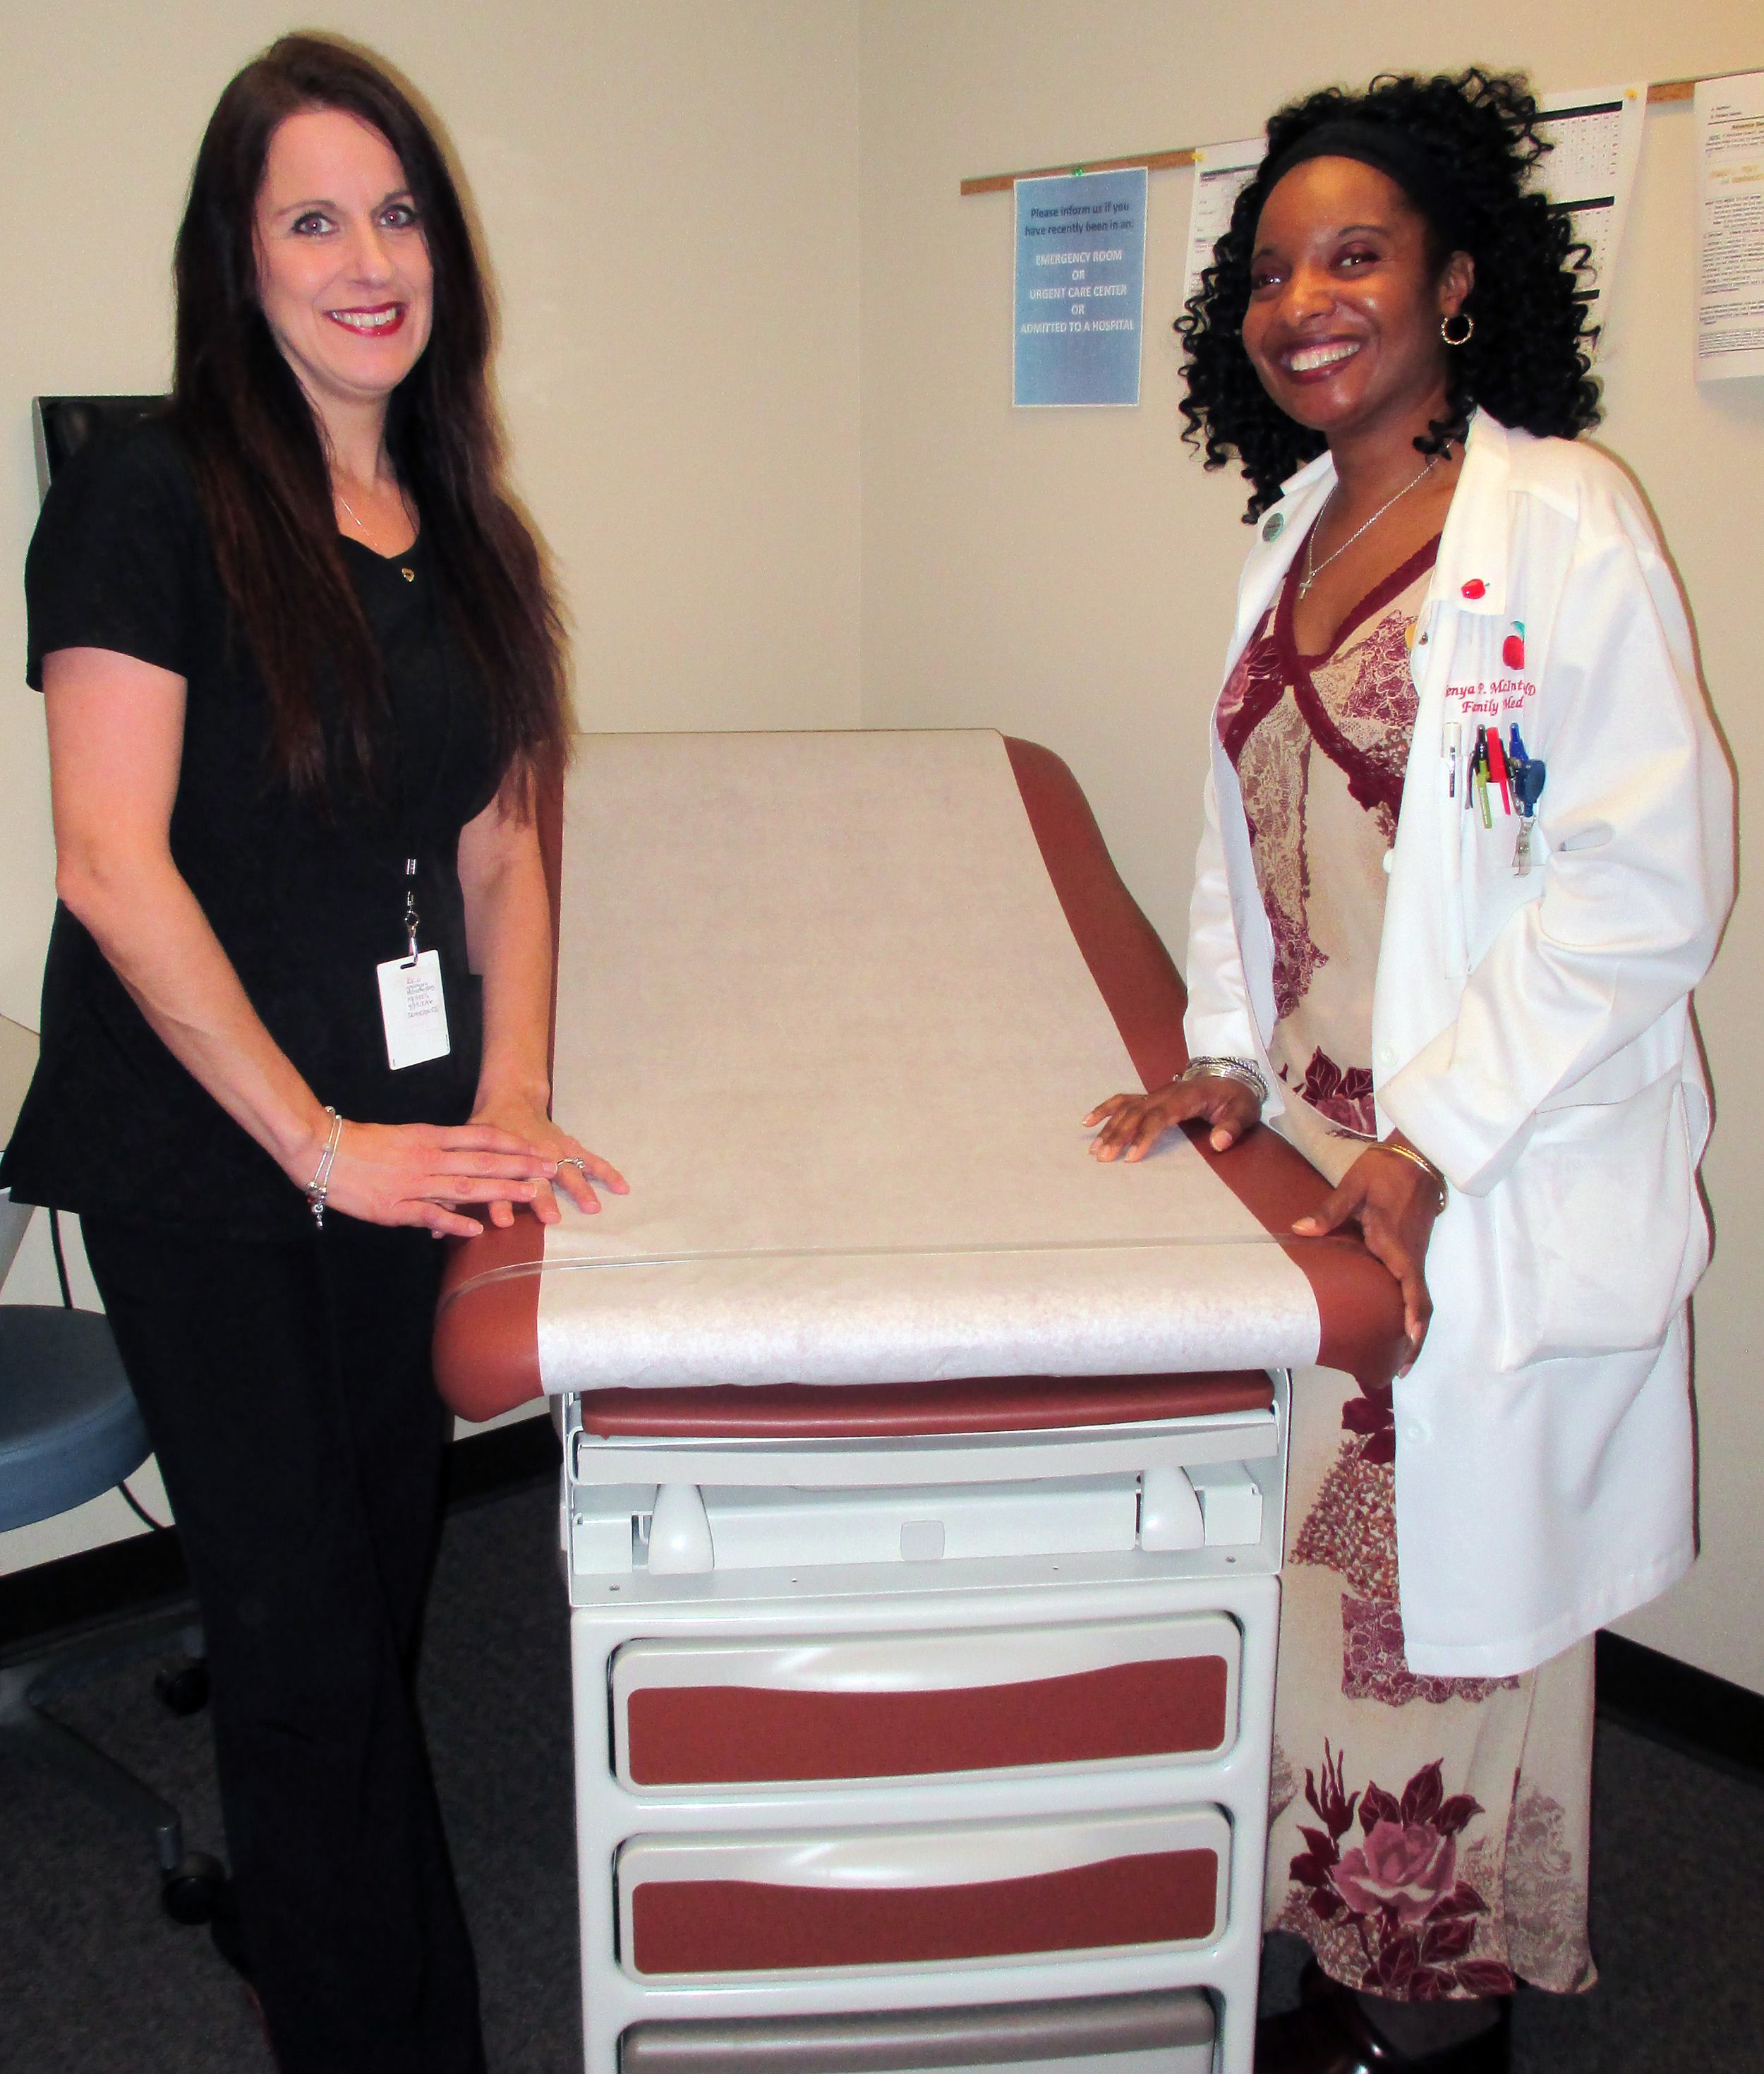 New exam table provided by the Norman and Charlotte Tooley Benevolent Fund, First Presbyterian Church, Brockport, NY